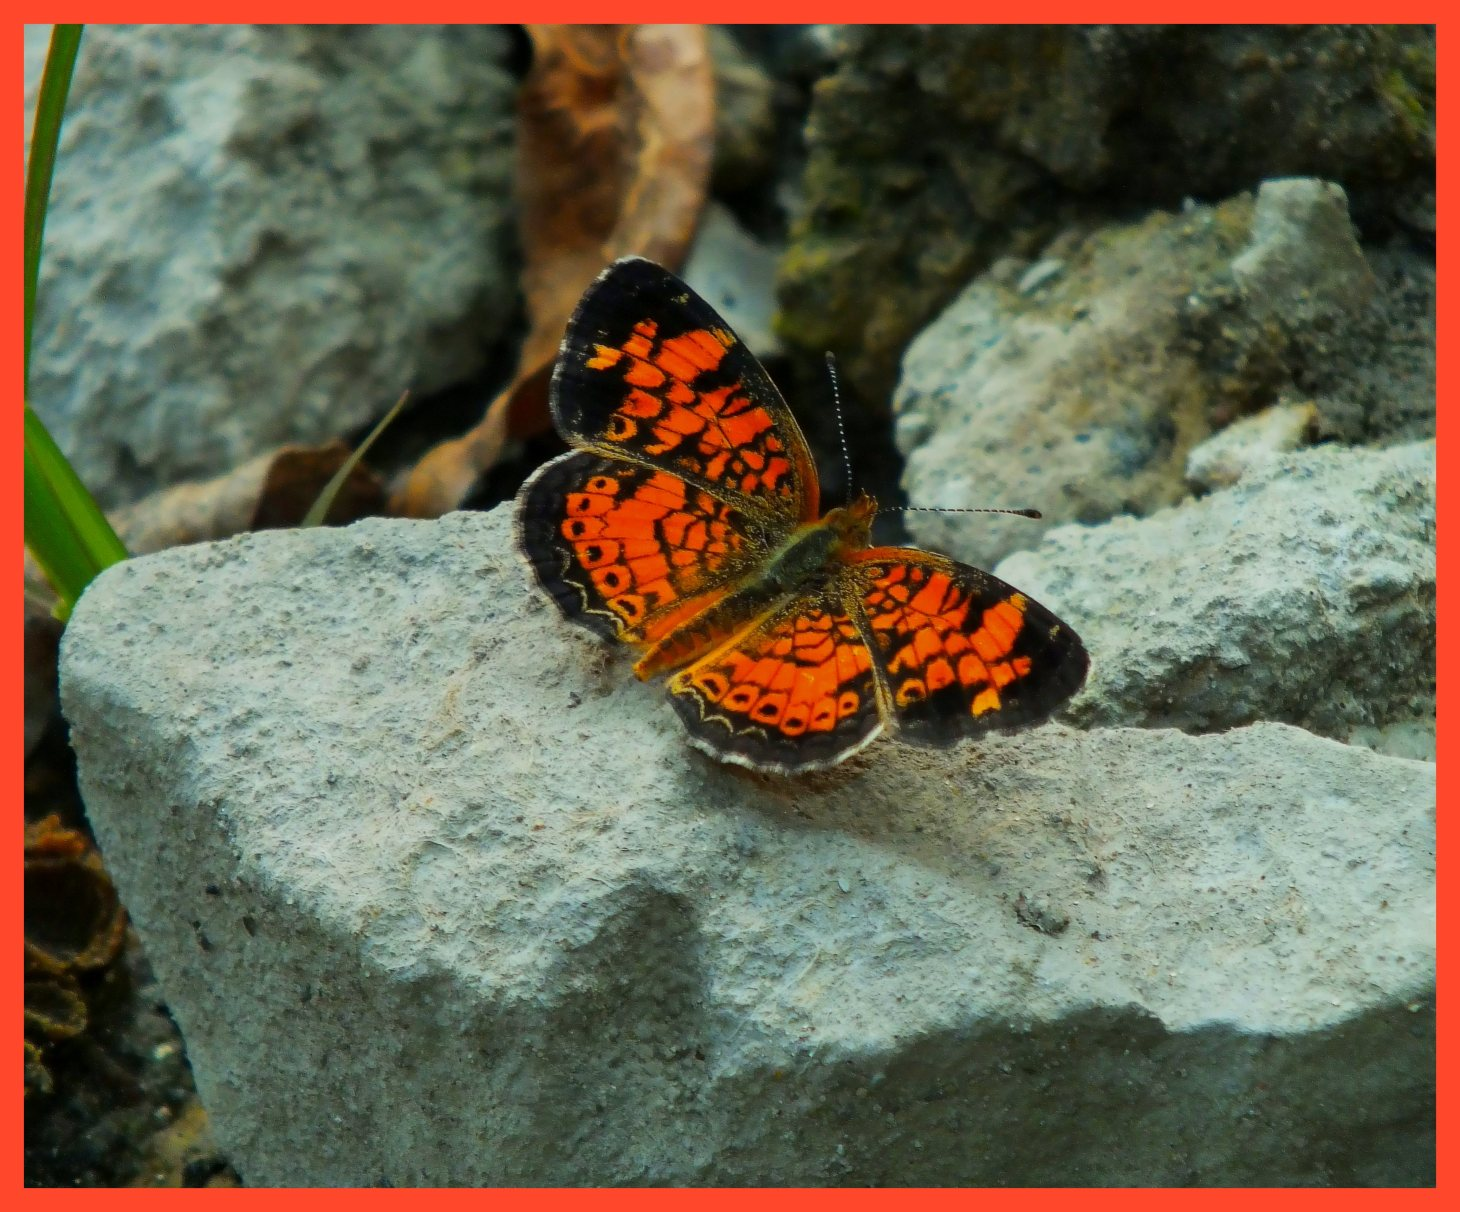 Pearl Crescent Butterfly. (1) Photo by Thomas Peace c. 2015